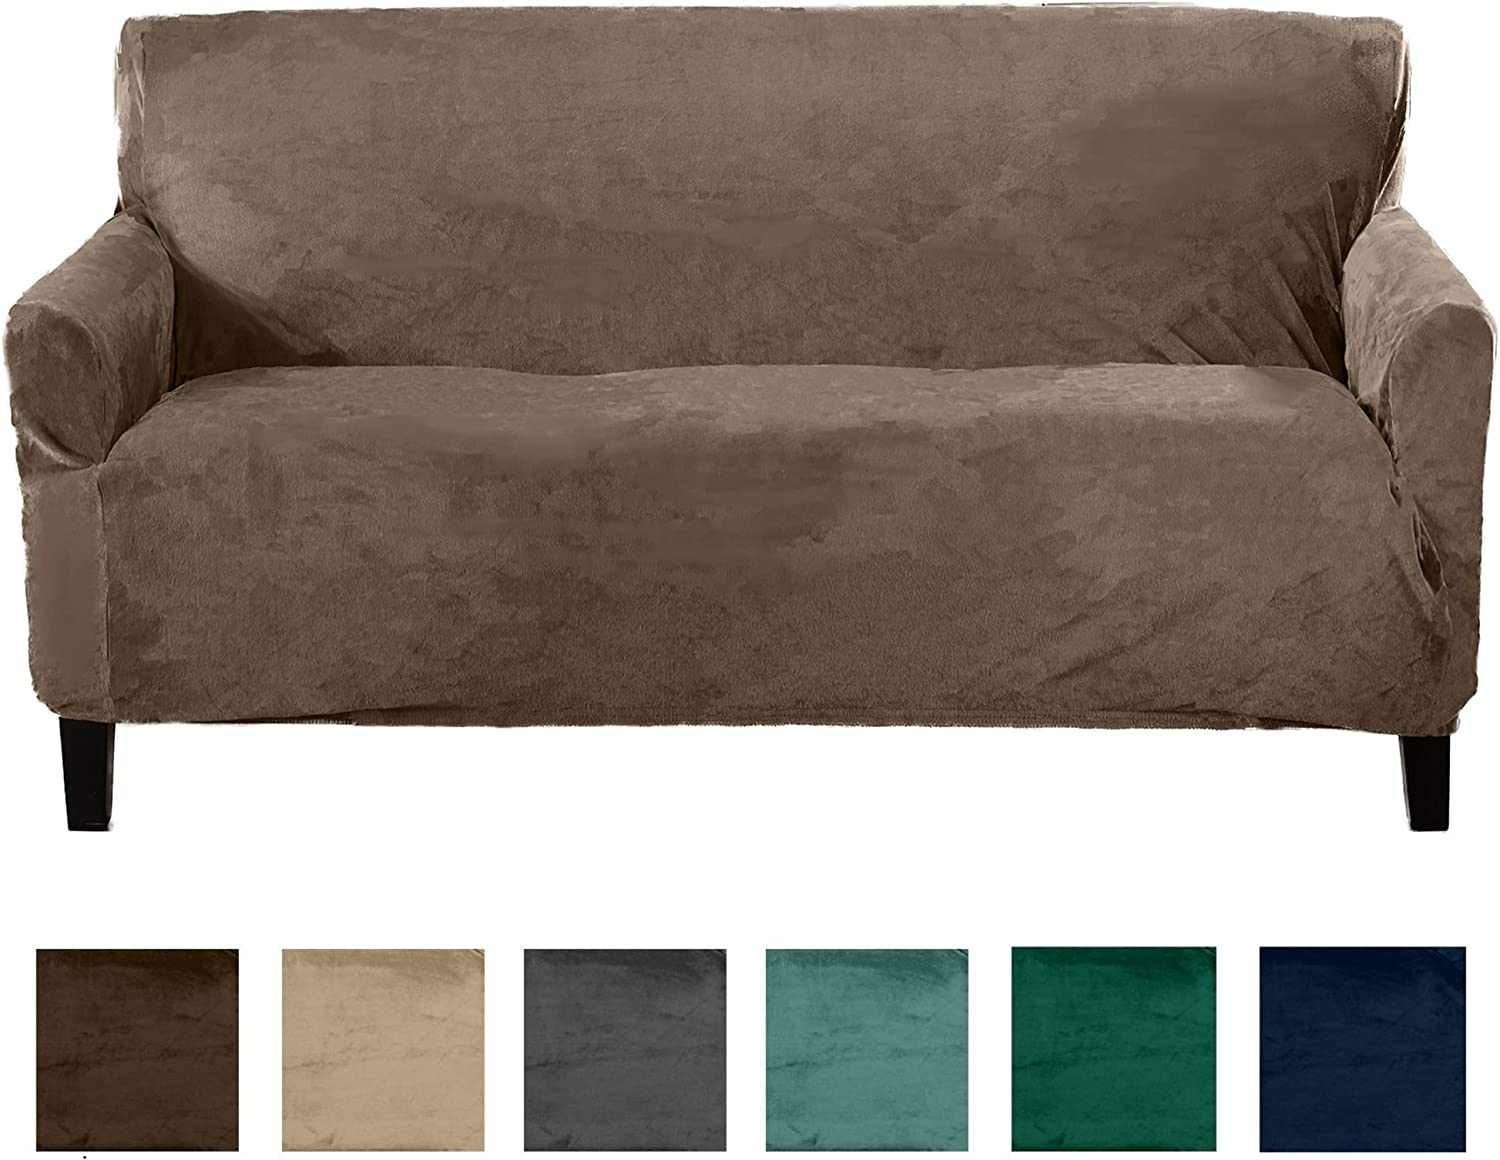 Great Bay Home Form Fit, Slip Resistant, Stylish Furniture Shield Predector Featuring Velvet Plush Fabric Magnolia Collection Strapless Slipcover (Sofa, Walnut Brown)